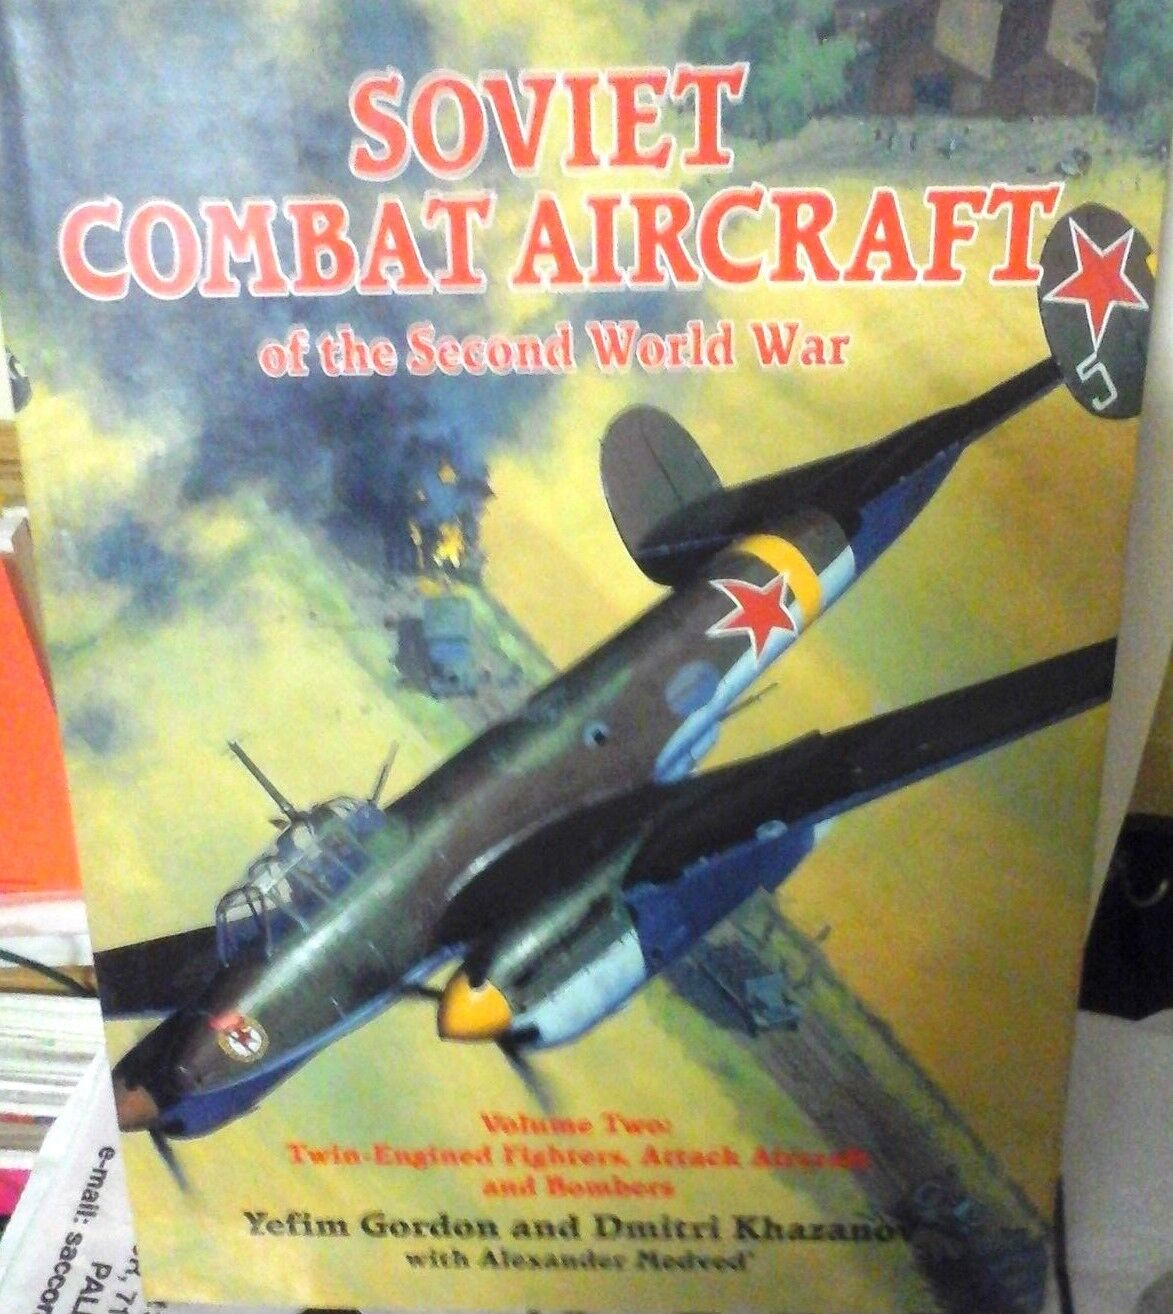 SOVIET COMBAT AIRCRAFT OF THE SECOND WORLD WAR VOL.2 TWIN ENGINED FIGHTERS